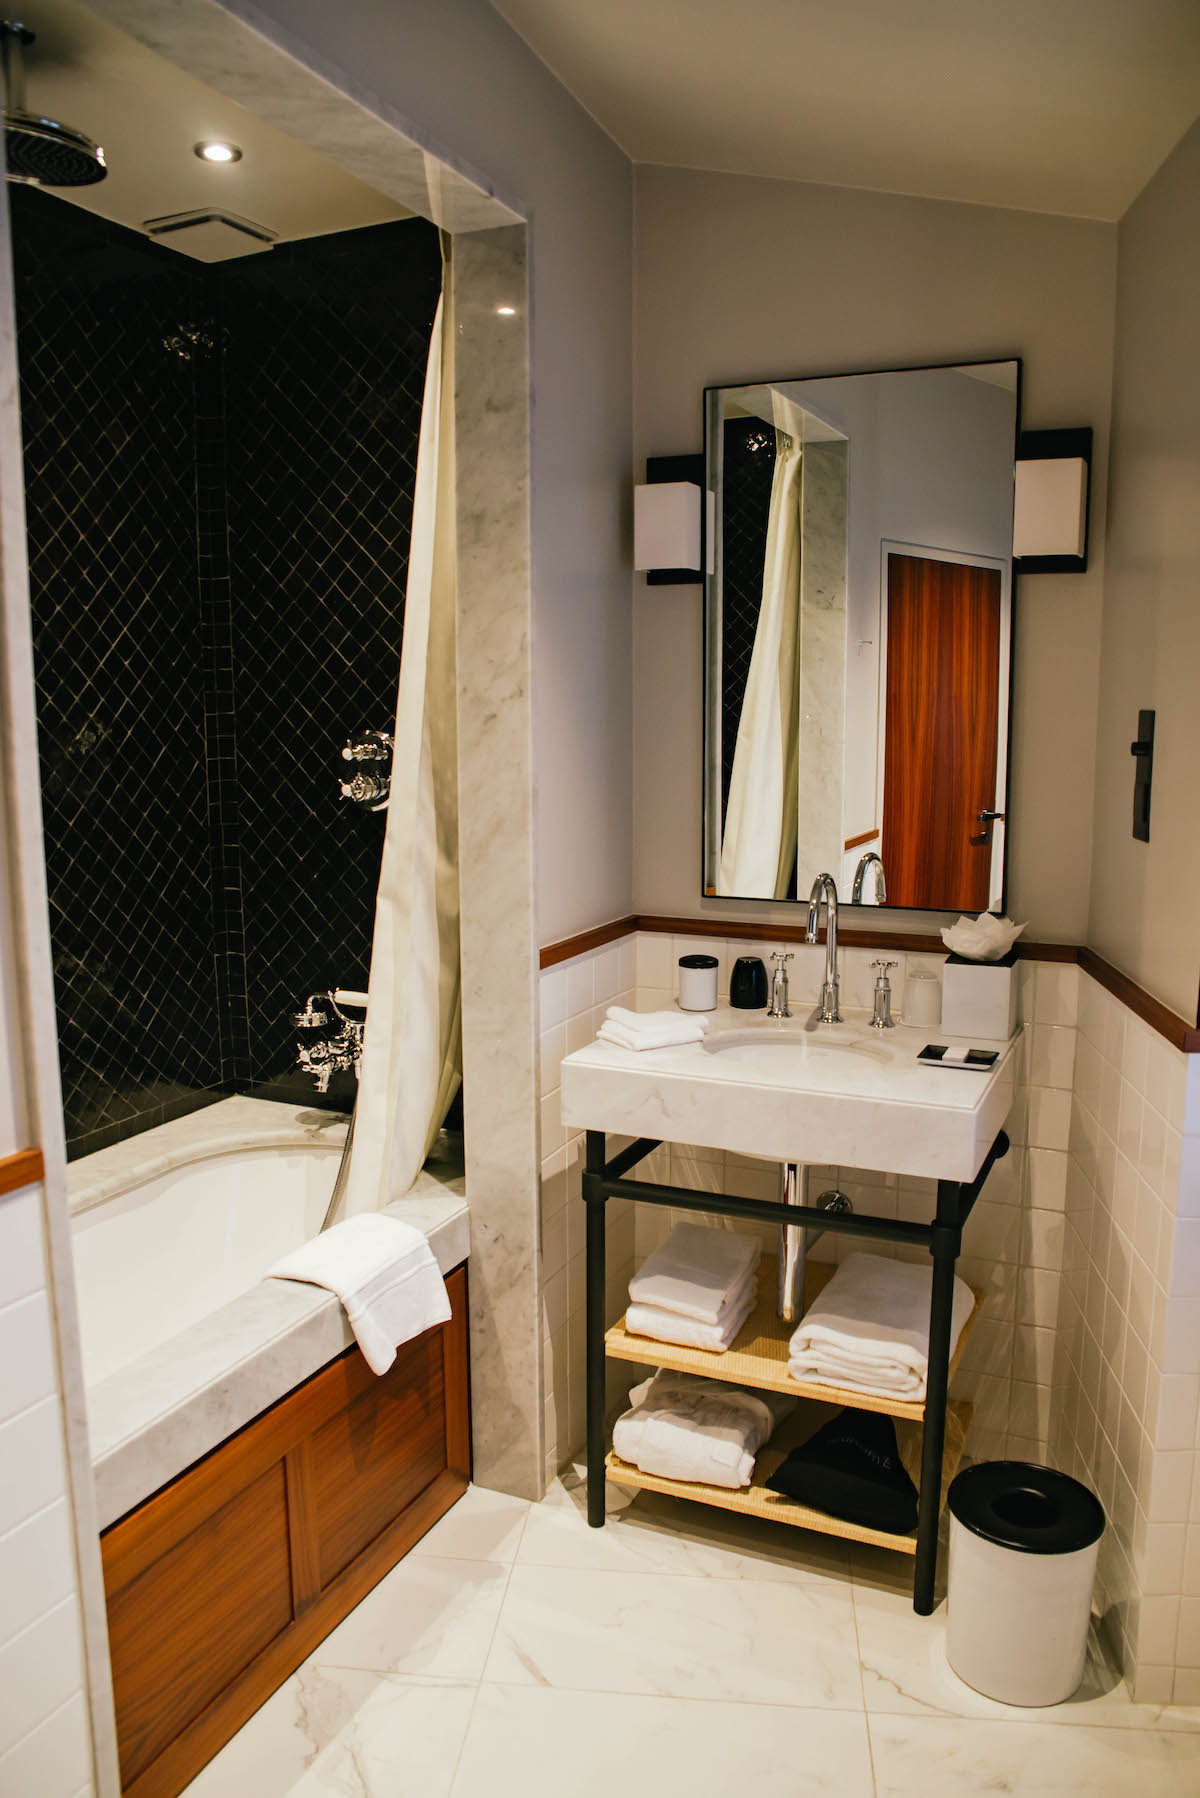 Le Roch Hotel and Spa Guest Room